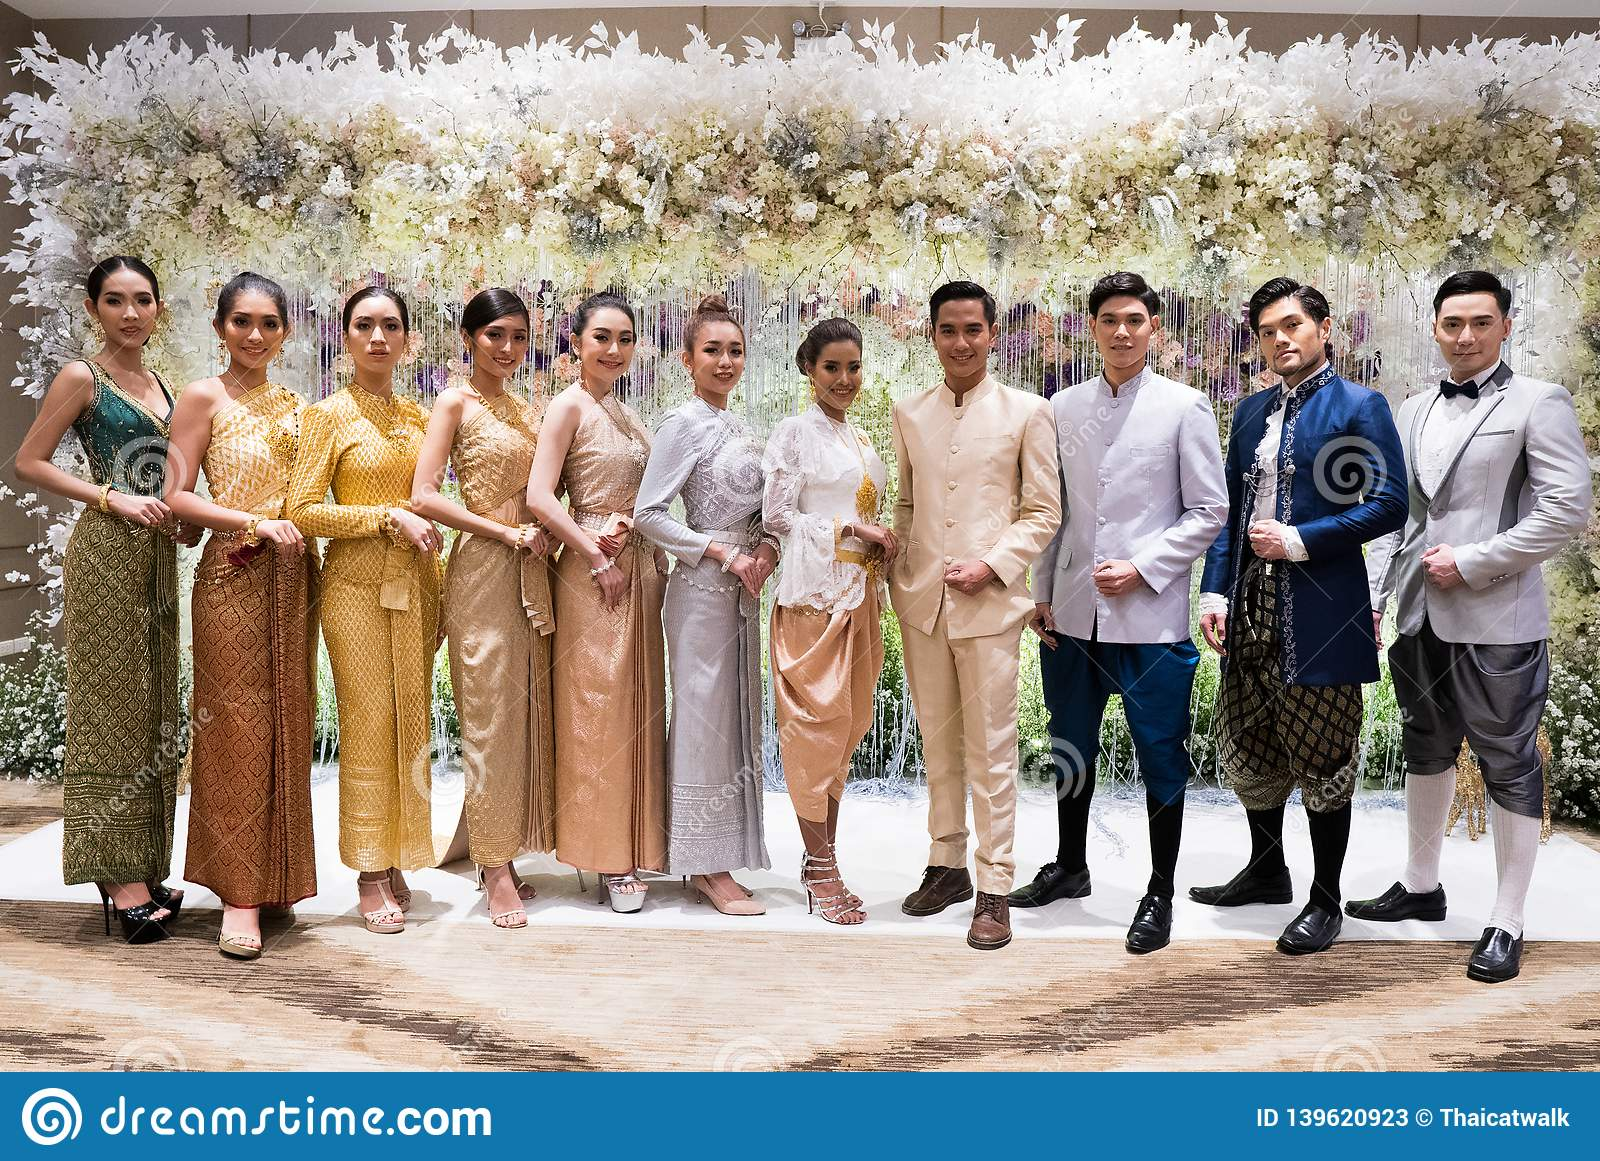 b711601ba Bangkok, Thailand - February 17, 2019 ; Group Photo of Fashion Model in Thai  Traditional Costume Wedding Dress present on Catwalk in Four Wings Hotel  for ...